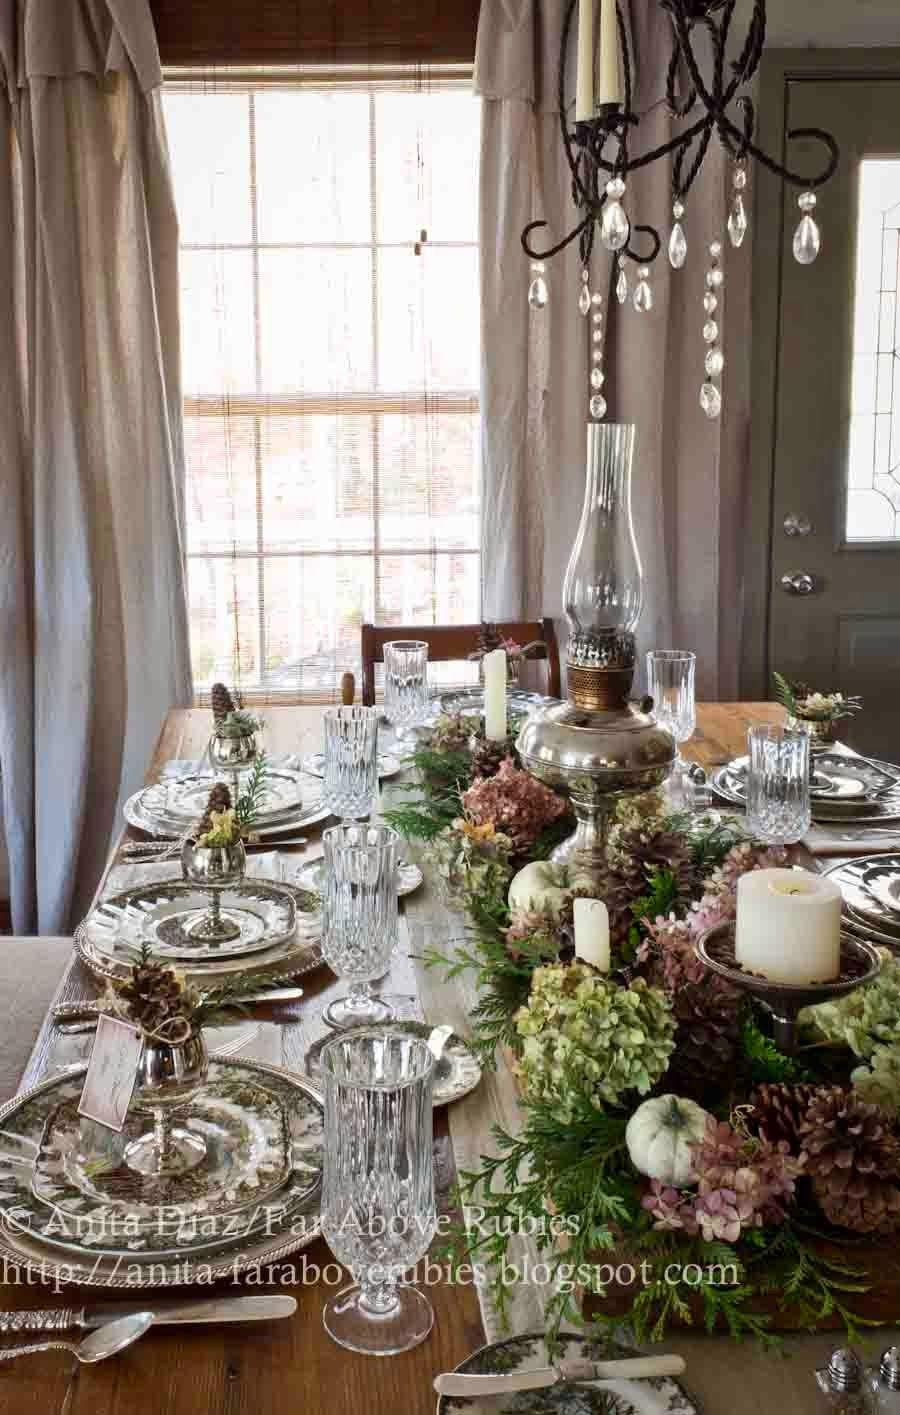 """<p>Far Above Rubies blogger Anita Diaz used an old chestnut board as her table's centerpiece, then filled it with arborvitae, hydrangeas, pinecones, and hand-painted pumpkins. To add an extra gleam, she placed silver sugar bowls and her great-grandfather's vintage oil lamp in the middle.</p><p><strong>Get the tutorial at <a href=""""http://anita-faraboverubies.blogspot.com/2013/11/friendly-village-thanksgiving.html"""" rel=""""nofollow noopener"""" target=""""_blank"""" data-ylk=""""slk:Far Above Rubies"""" class=""""link rapid-noclick-resp"""">Far Above Rubies</a>.</strong></p><p><strong><a class=""""link rapid-noclick-resp"""" href=""""https://www.amazon.com/SuperMoss-24511-Black-Spruce-8-Ounce/dp/B00K80EWGA/?tag=syn-yahoo-20&ascsubtag=%5Bartid%7C10050.g.2130%5Bsrc%7Cyahoo-us"""" rel=""""nofollow noopener"""" target=""""_blank"""" data-ylk=""""slk:SHOP PINECONES""""><strong>SHOP PINECONES</strong></a><br></strong></p>"""